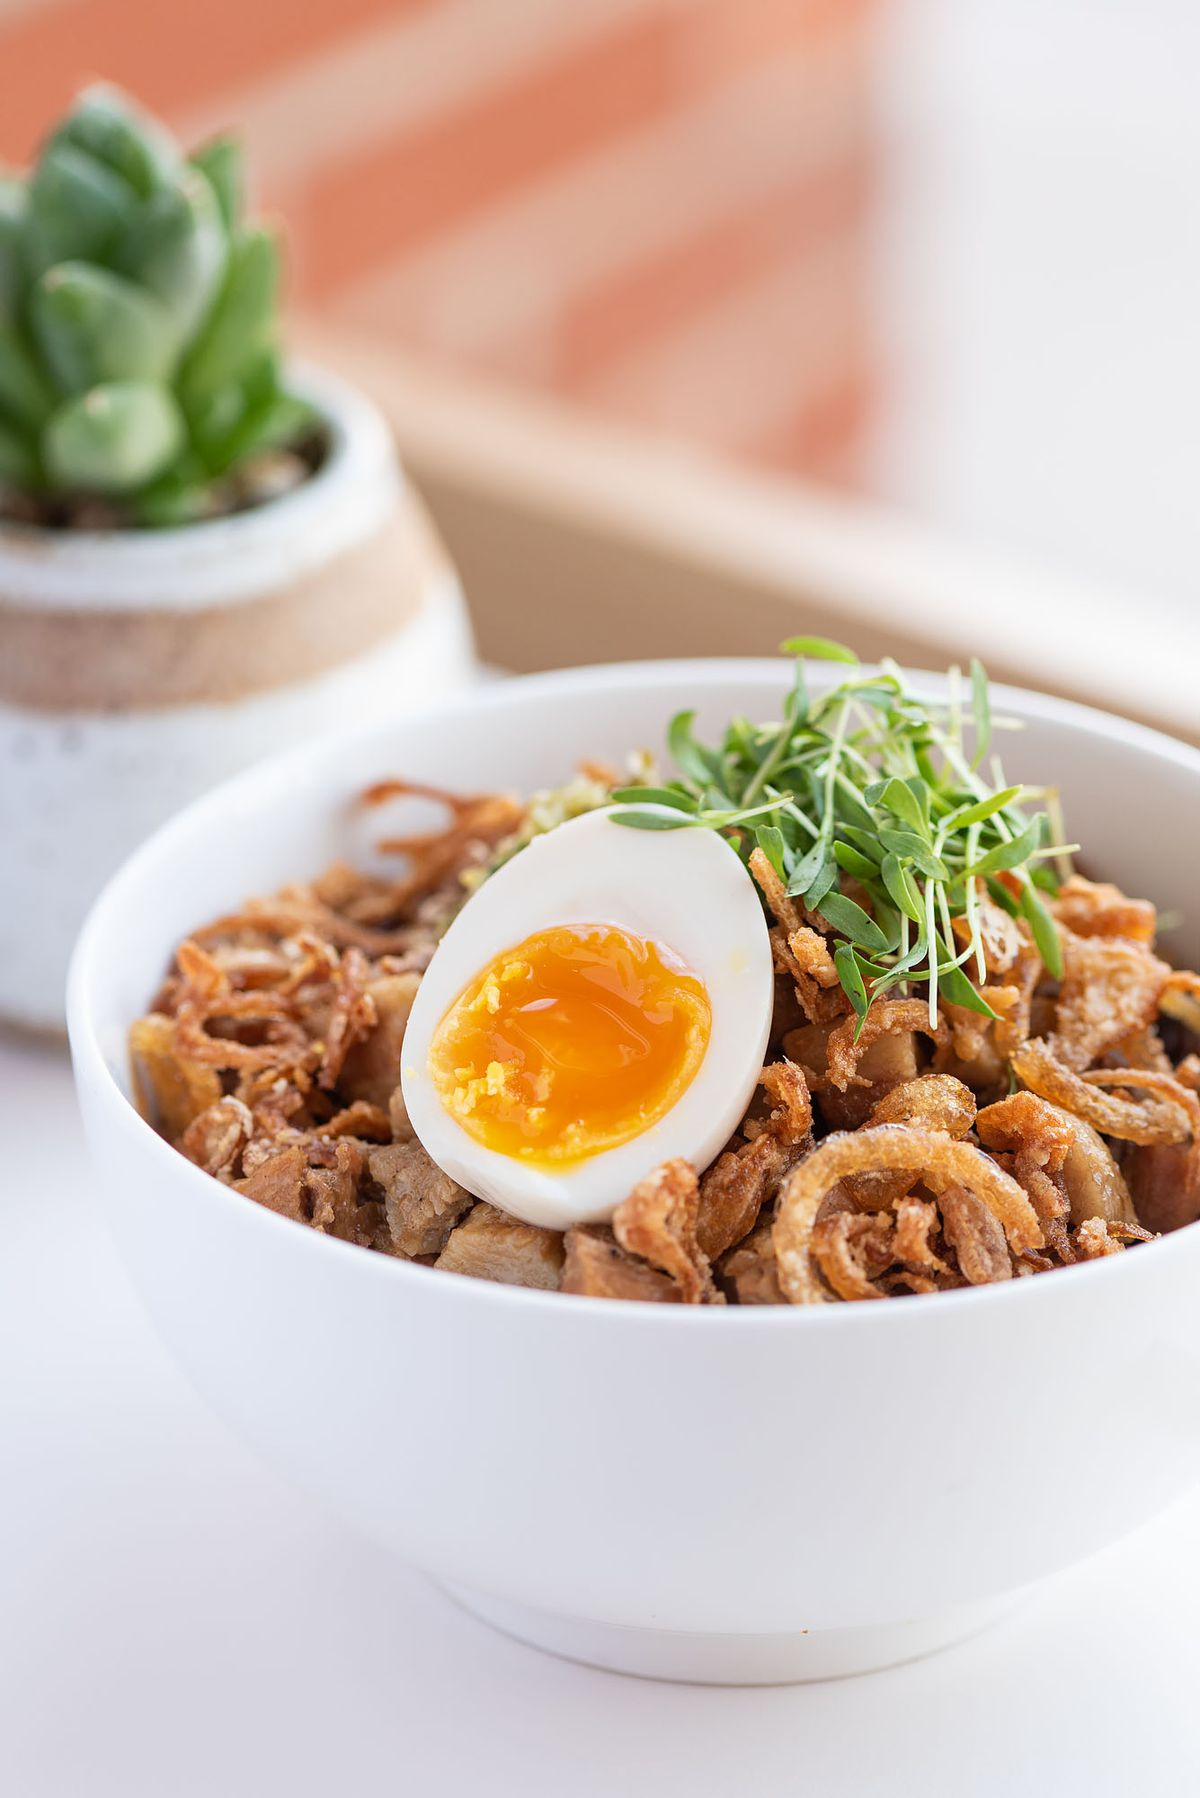 A bowl of rice with pork and an egg.